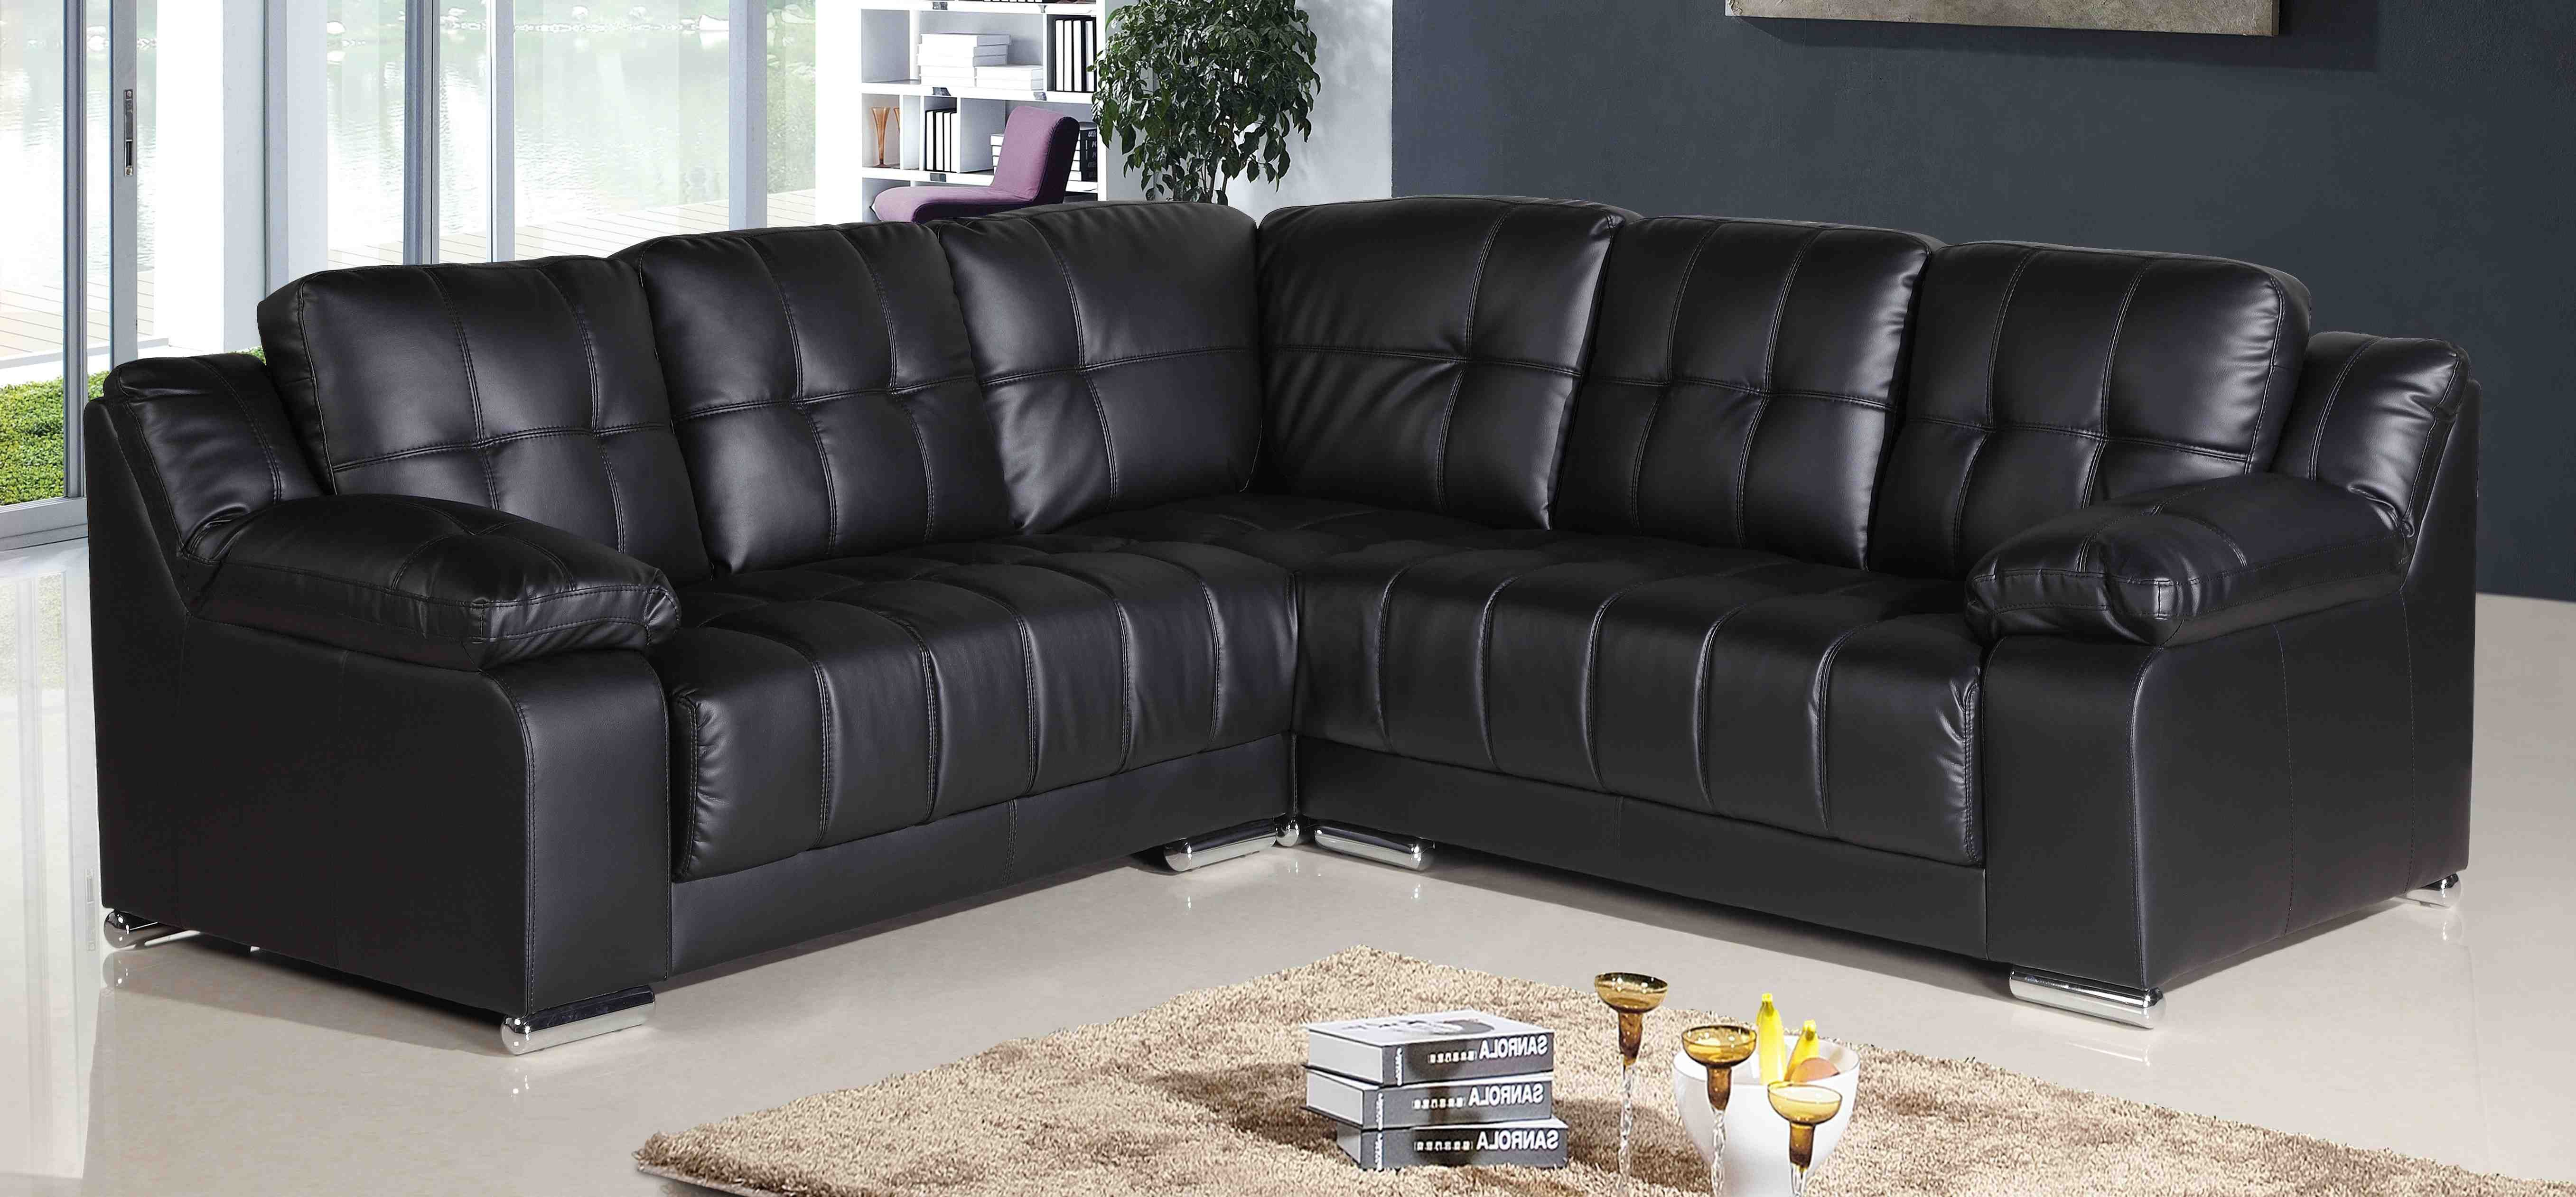 Cheap Leather Corner Sofa For Sale London, Black Leather ...